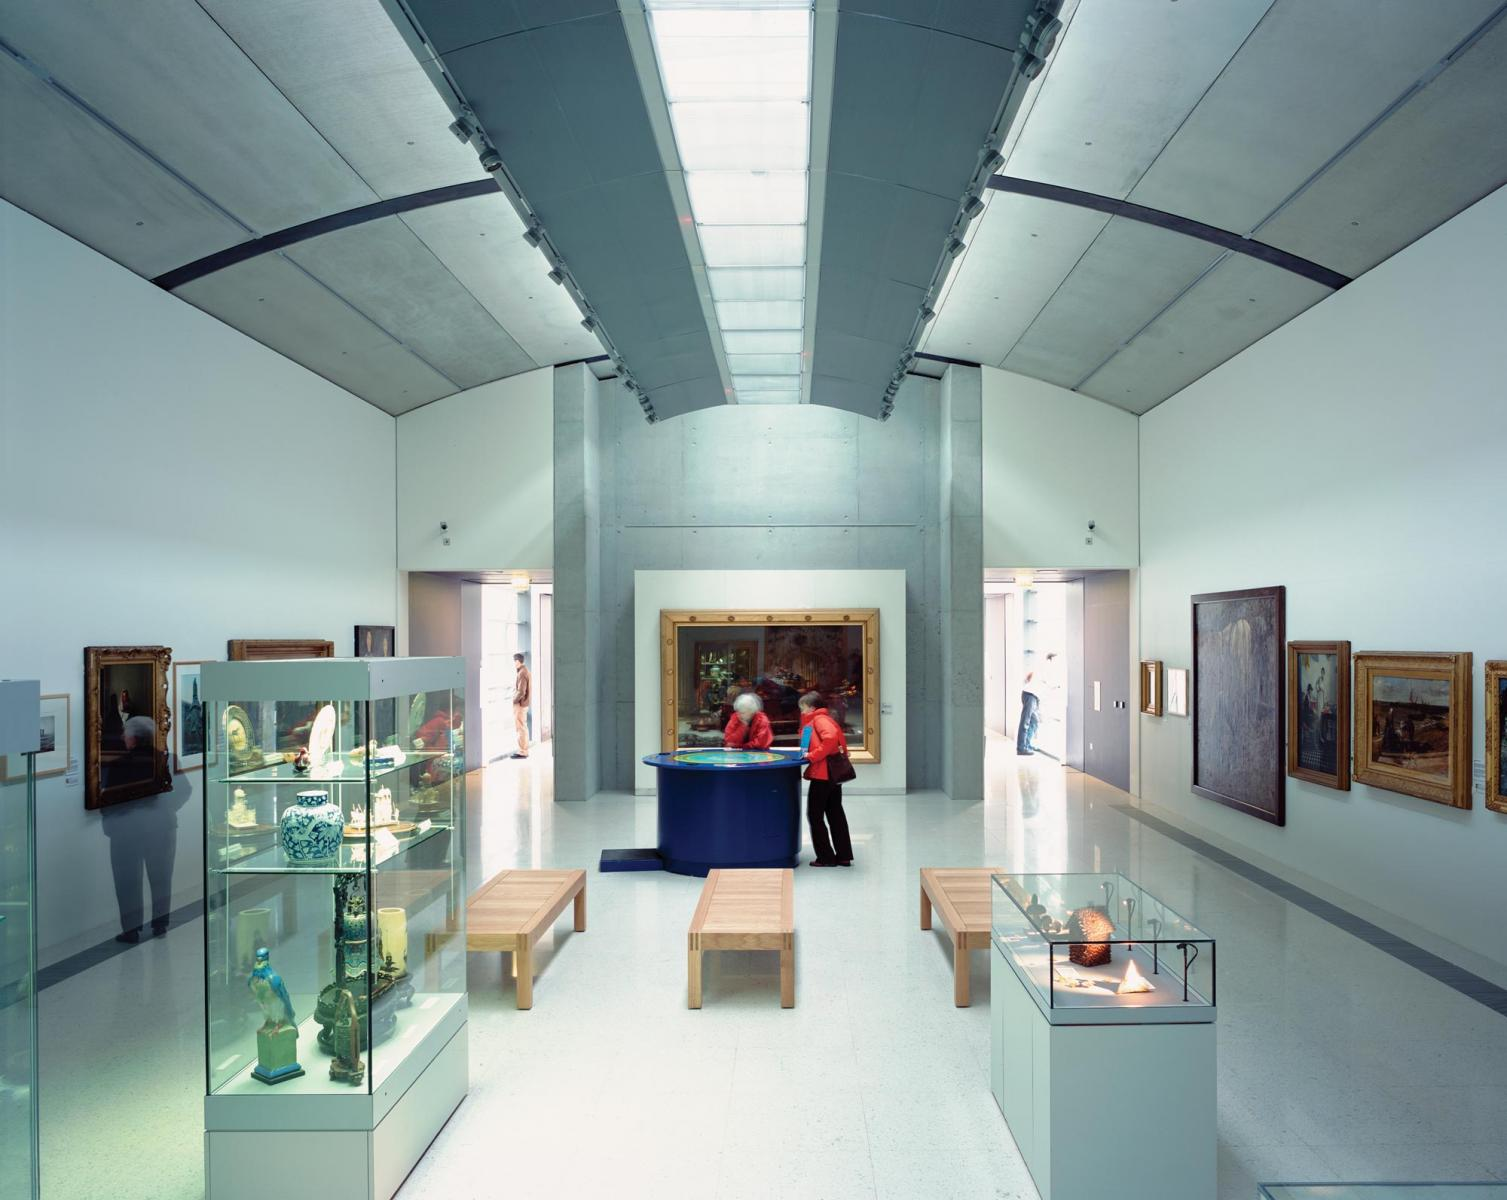 Gallery Oldham - Interior view of exhibition gallery